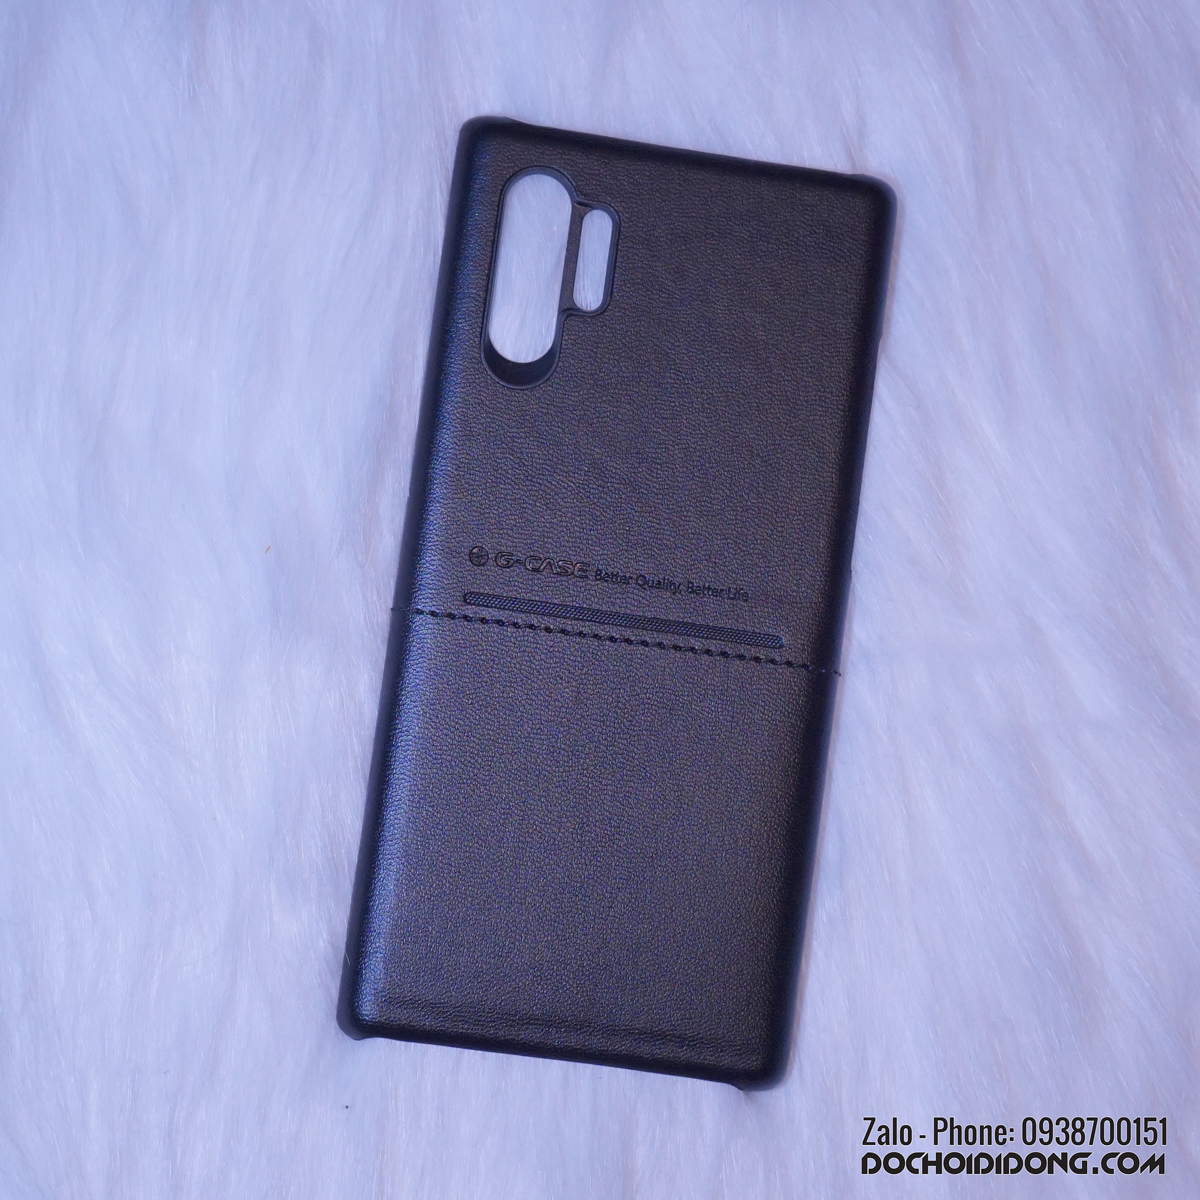 op-lung-samsung-note-10-note-10-plus-g-case-lung-da-co-khe-nhet-the